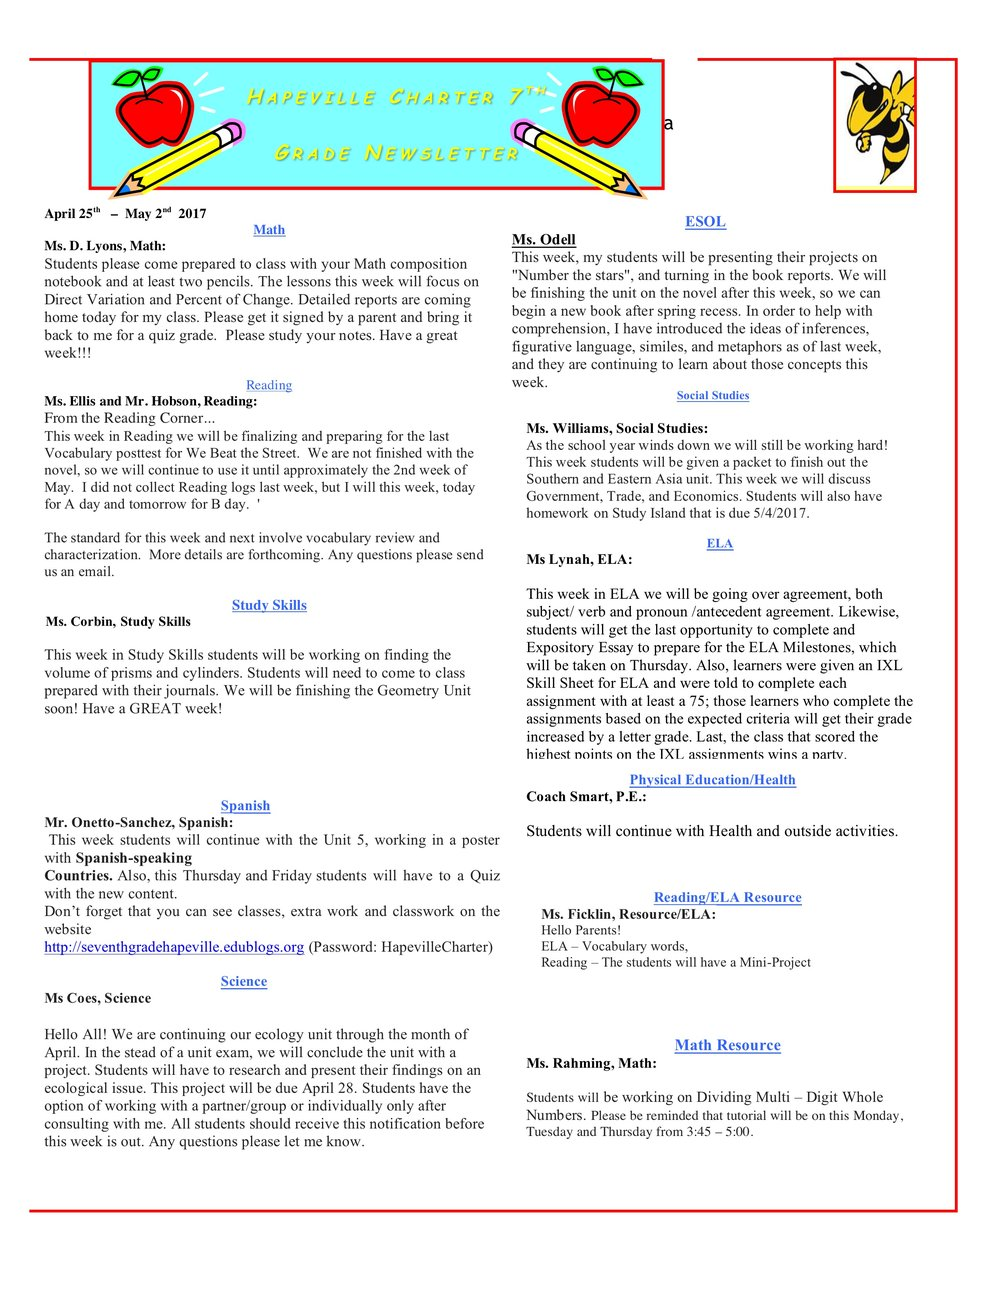 Newsletter Image7th Grade Newsletter 4-25-2017.jpeg